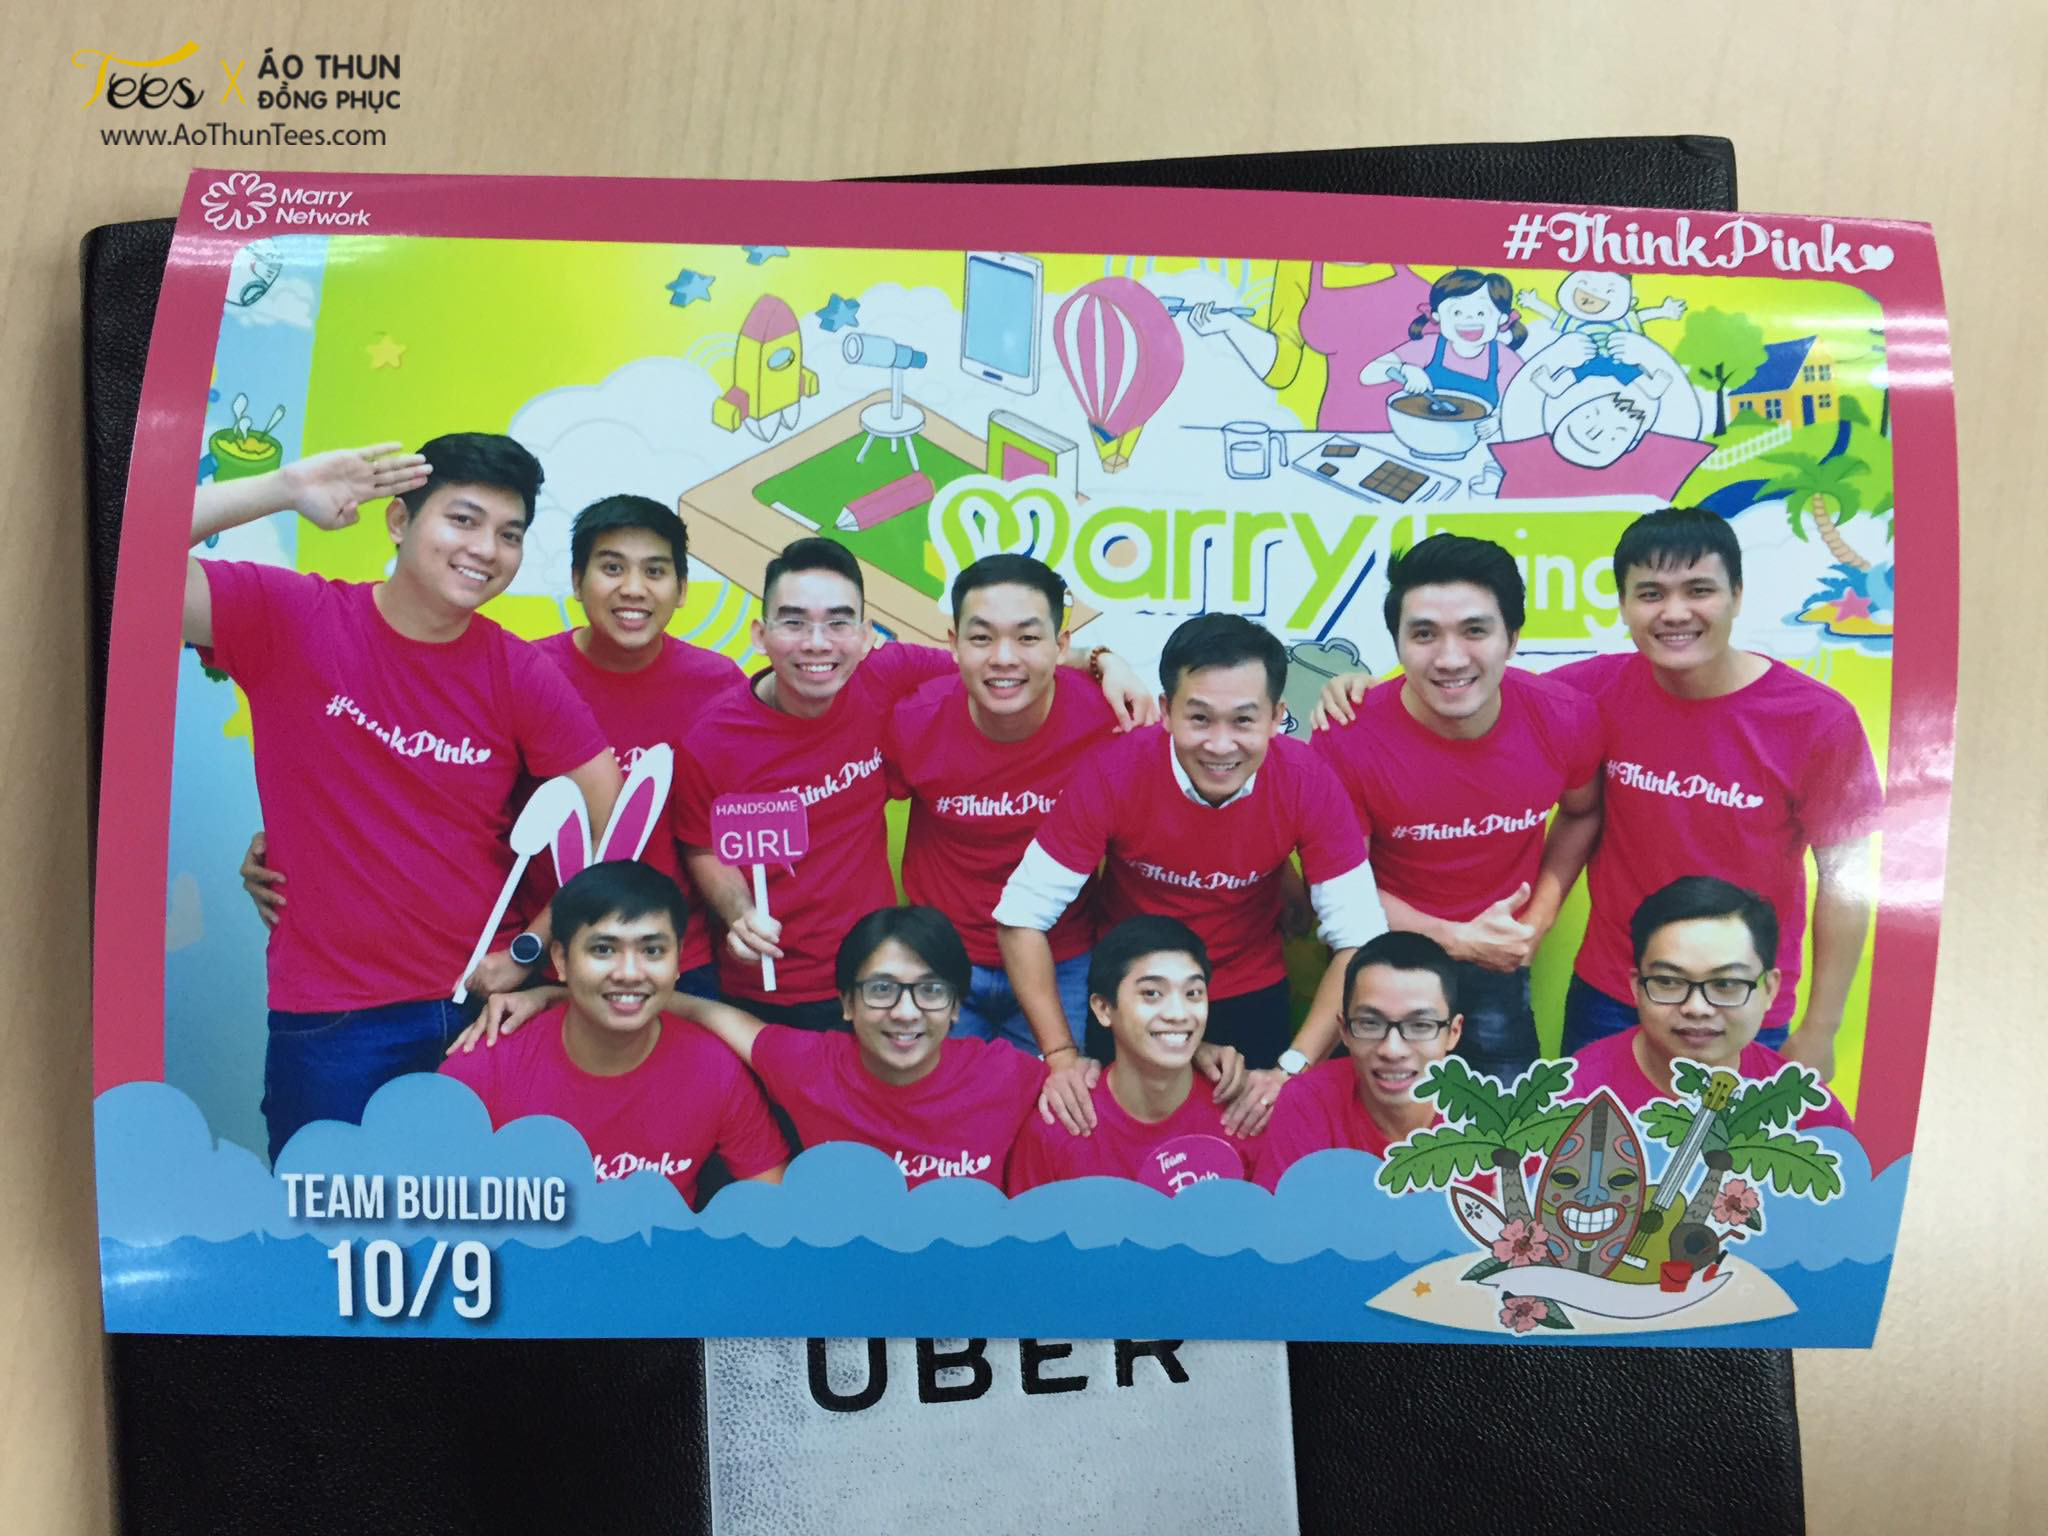 thinkpink marryvn 1a - Ửng hồng áo thun Teambuilding #ThinkPink – Marry.vn